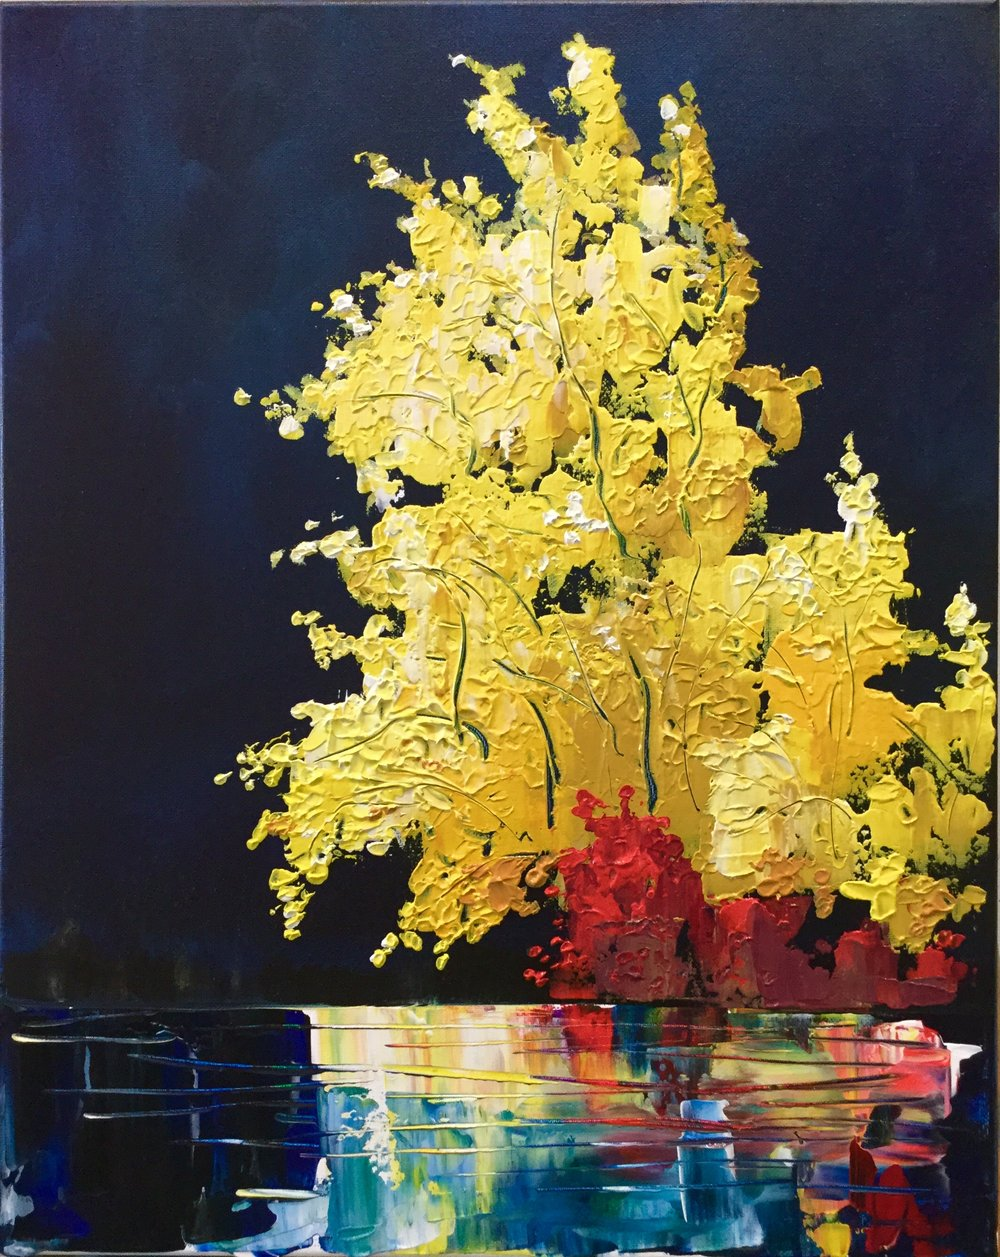 Paint Night at Boston Pizza: Indigo - Experiment with heavy body acrylic mediums in this Indigo session, so your painting keeps that textured look.Level: EasyDate: Monday, Oct. 15Time: 7-9:00pmBoston Pizza Salmon ArmPrice: $40/ guest